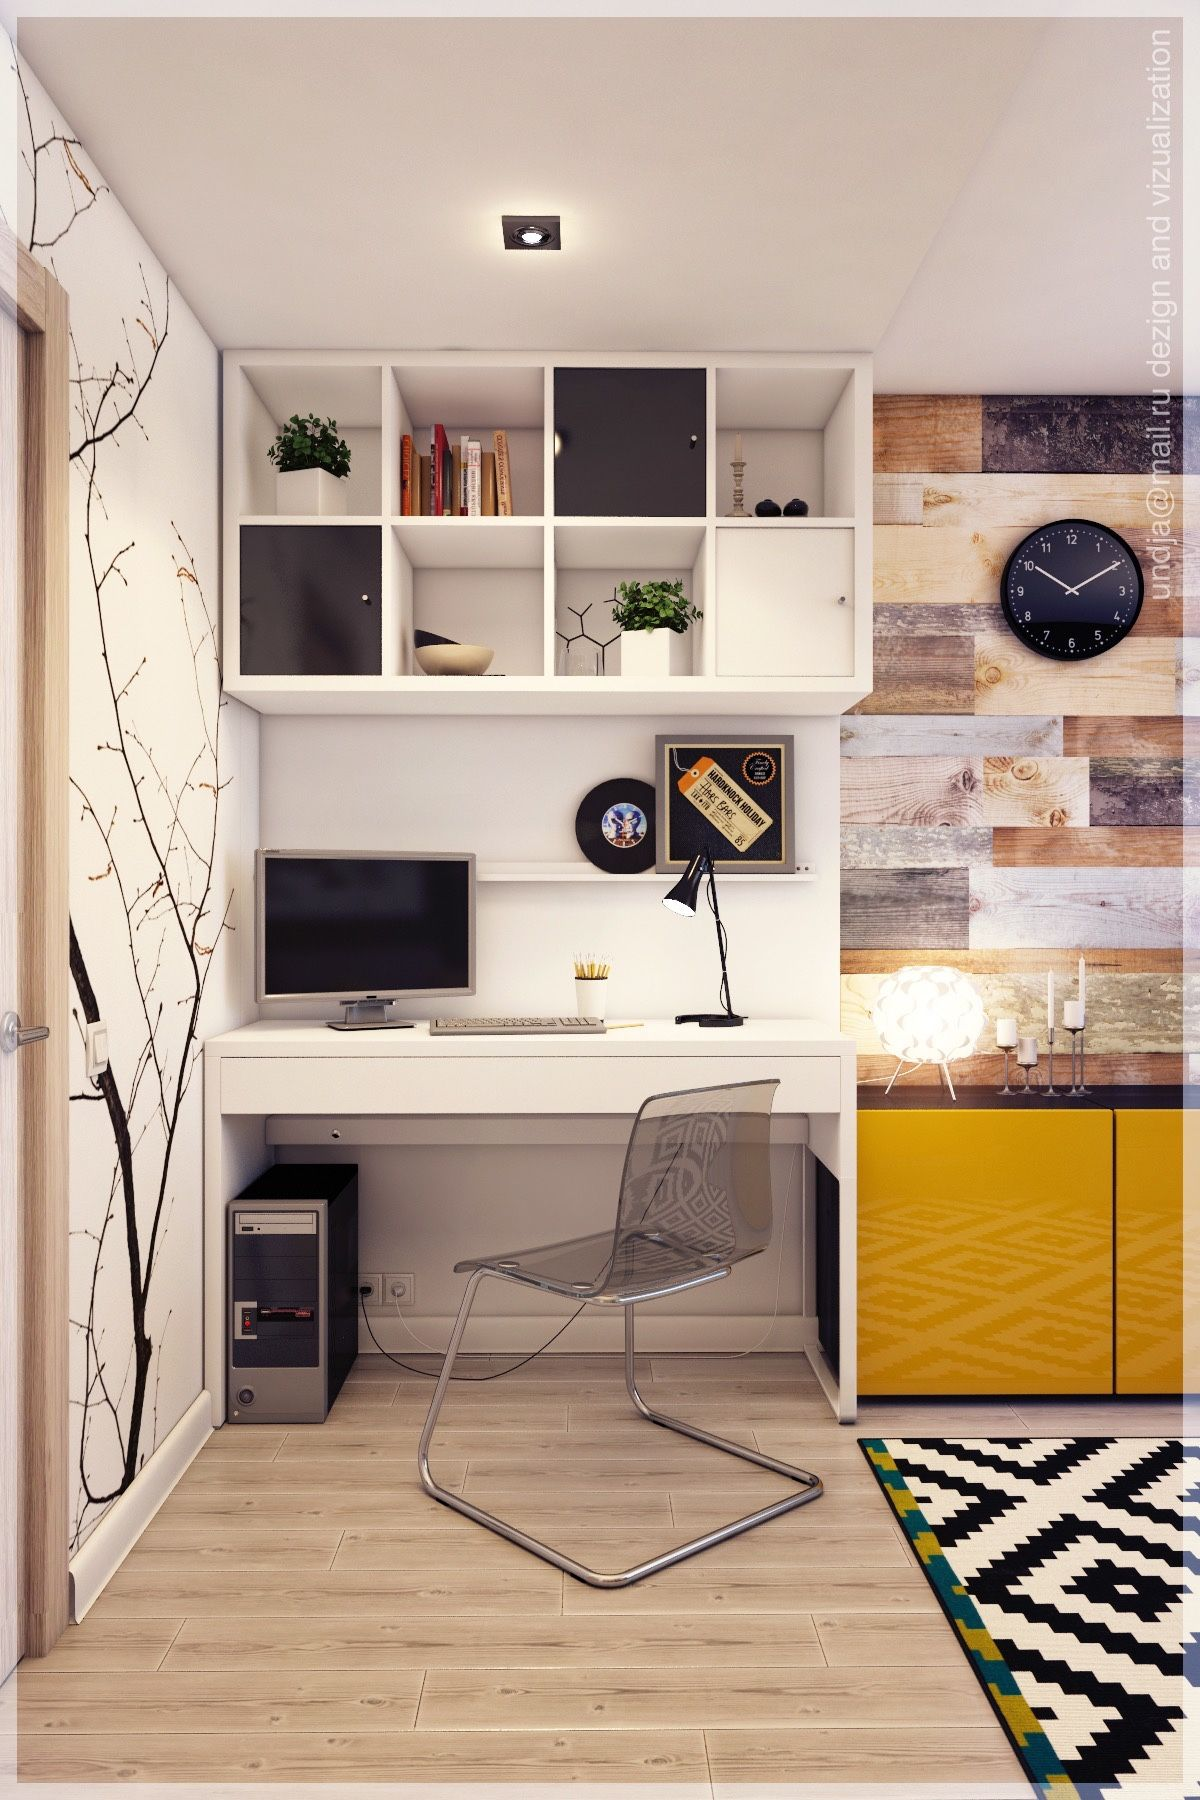 Home Designing \u2014 (via Refresh Your Workspace With Ideas From These ...